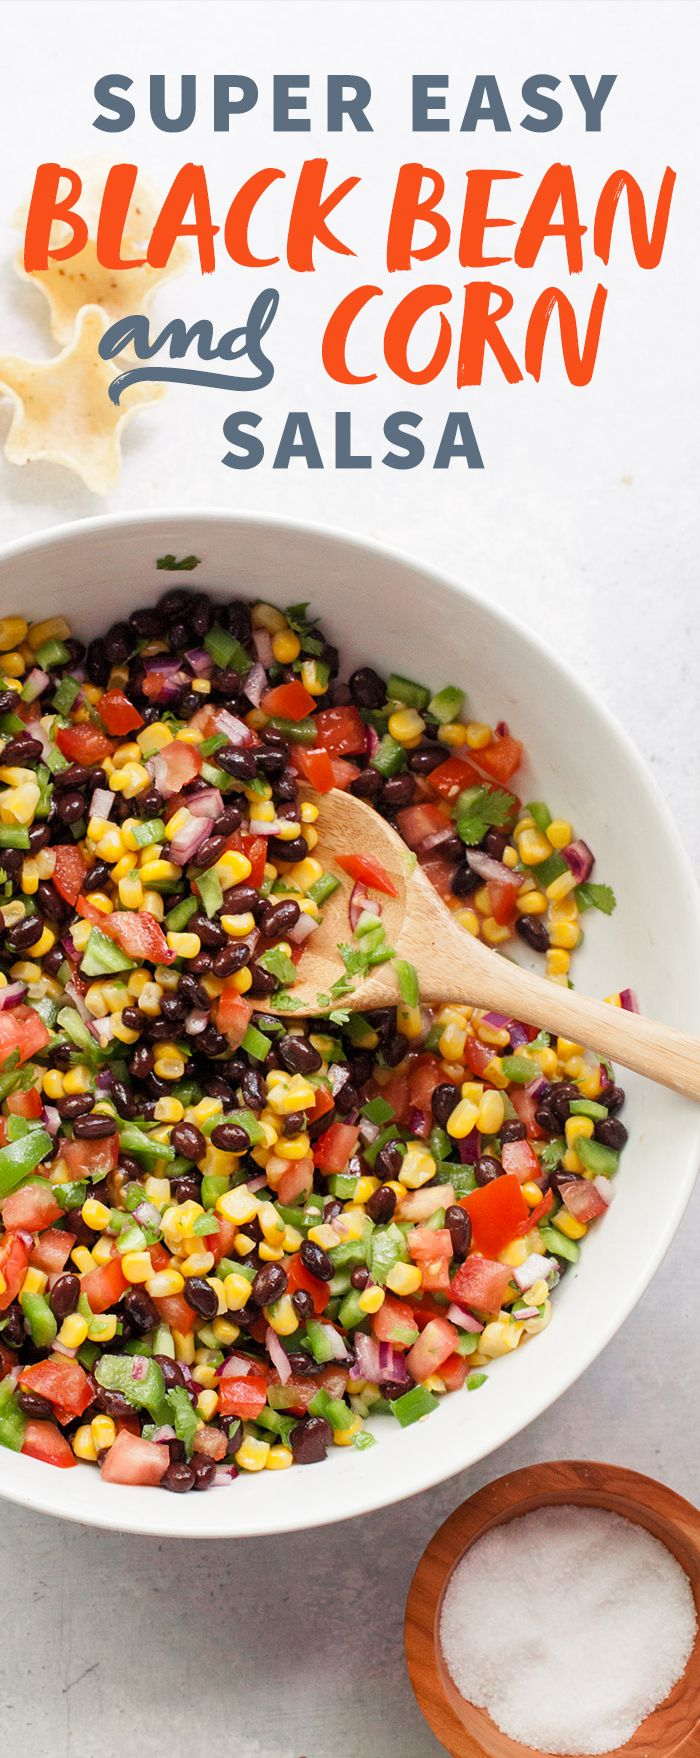 Black Bean and Corn Salsa Recipe: perfect healthy snack, lunch, appetizer or as a light dinner option!